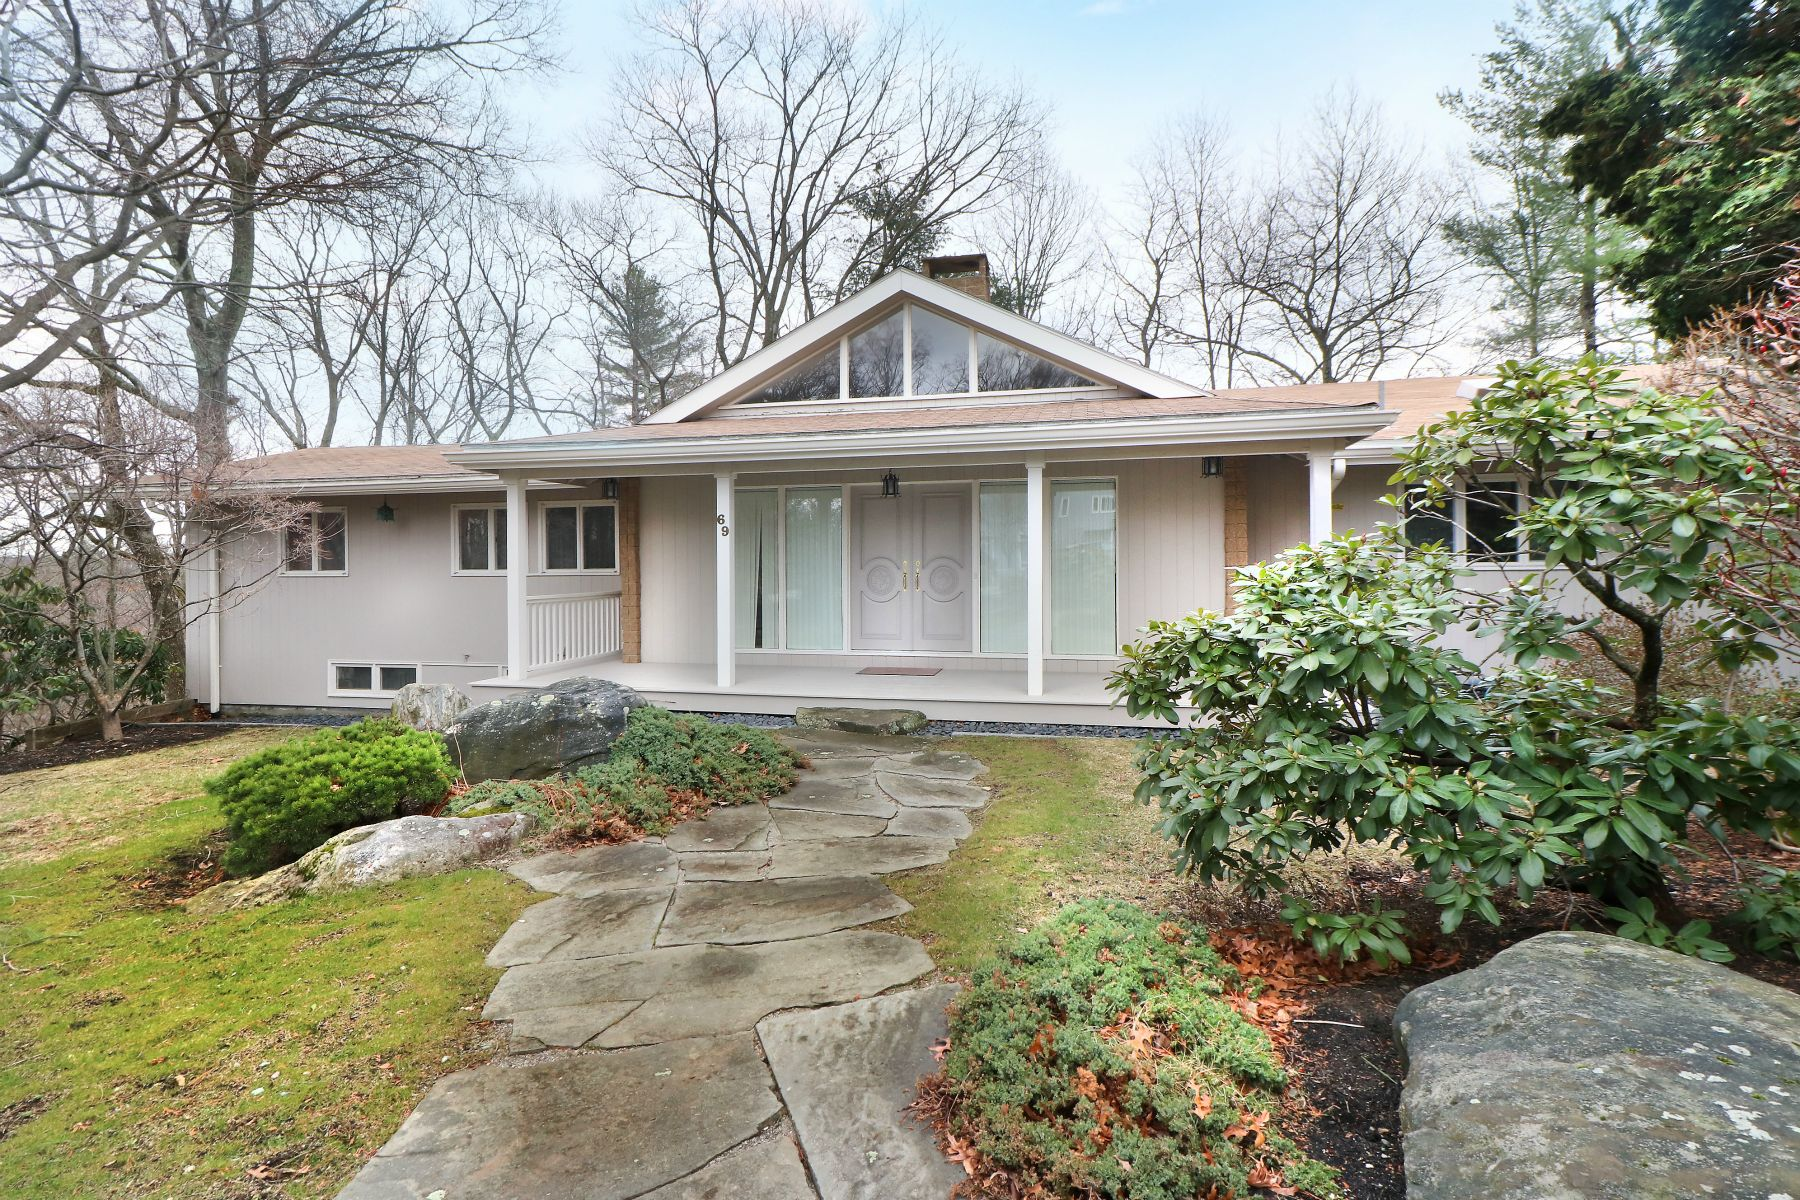 House for Sale at 69 Crestwood Rd, Newton Newton, Massachusetts 02465 United States